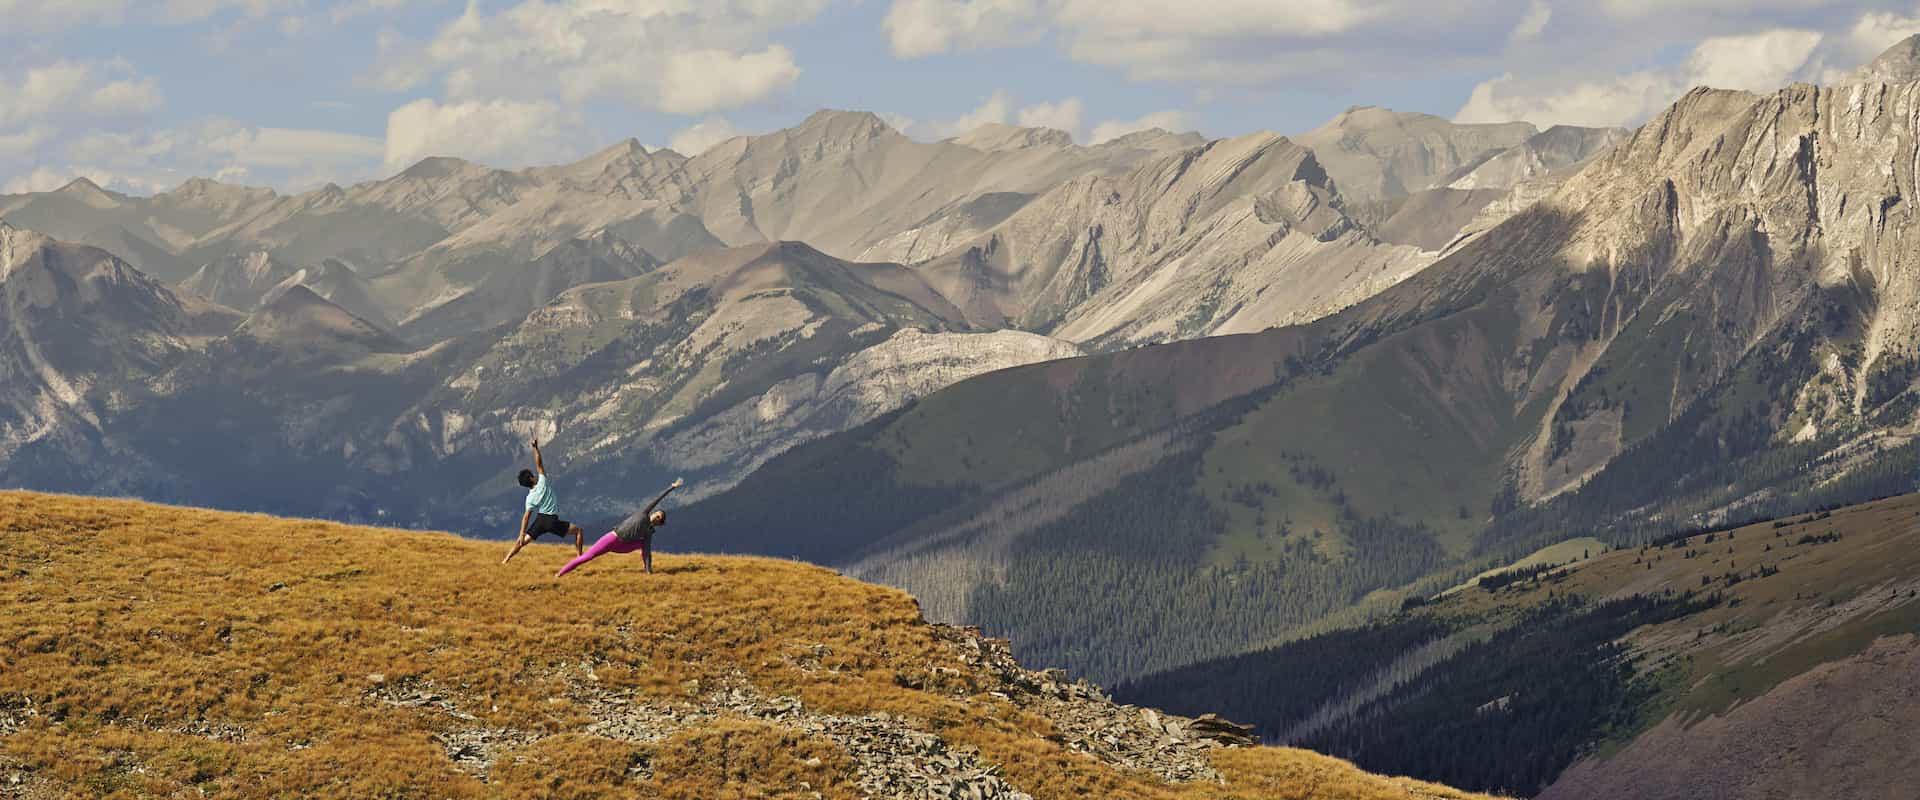 Experience yoga in Banff